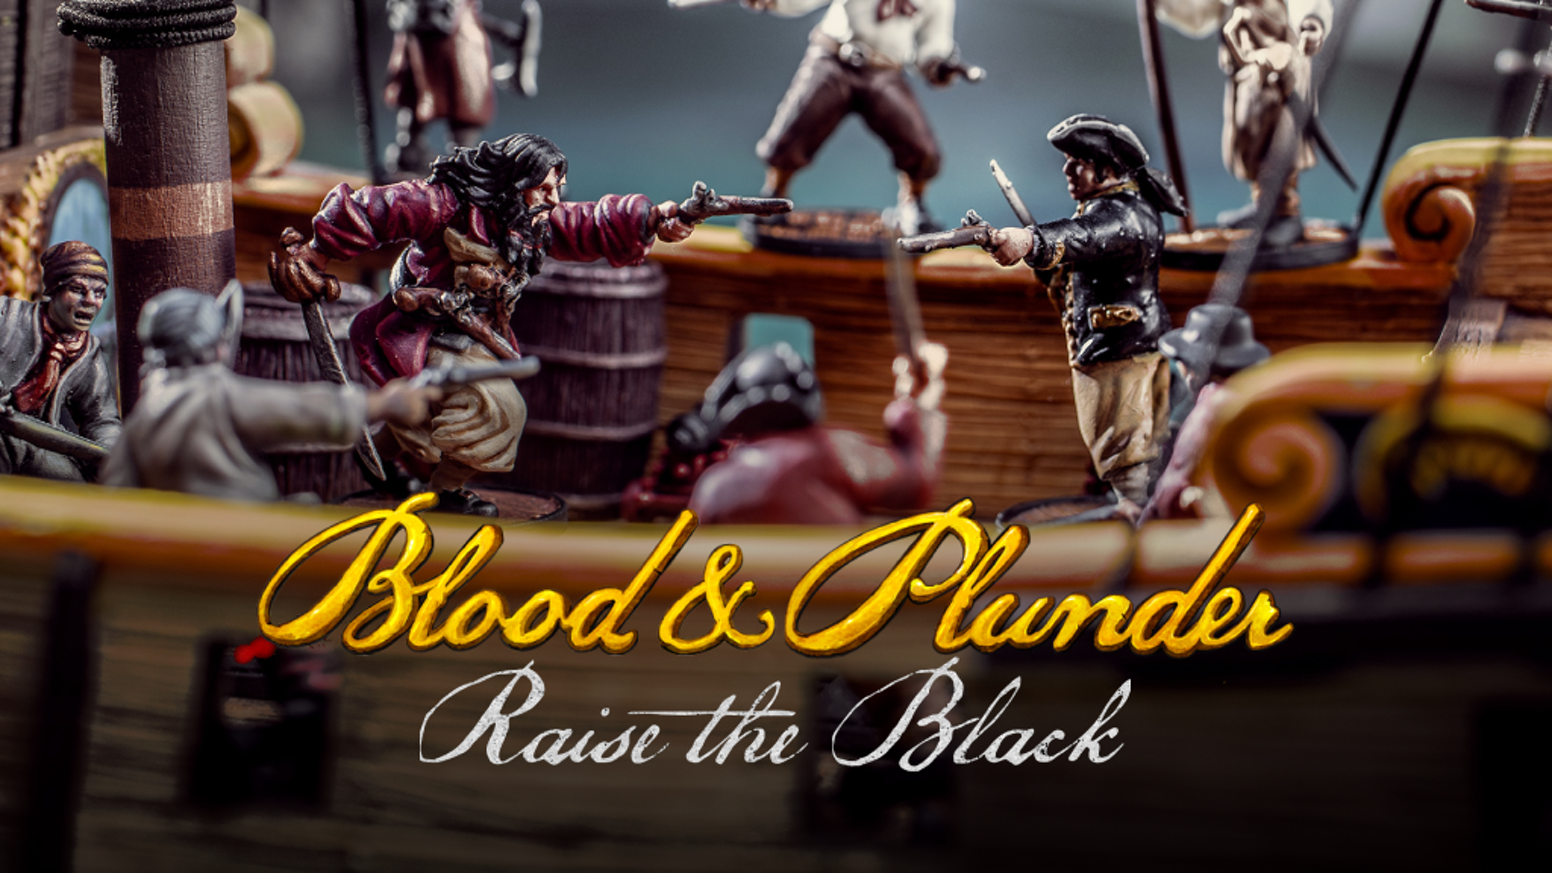 Golden age pirates join the world of Blood & Plunder as we move into the 18th century!